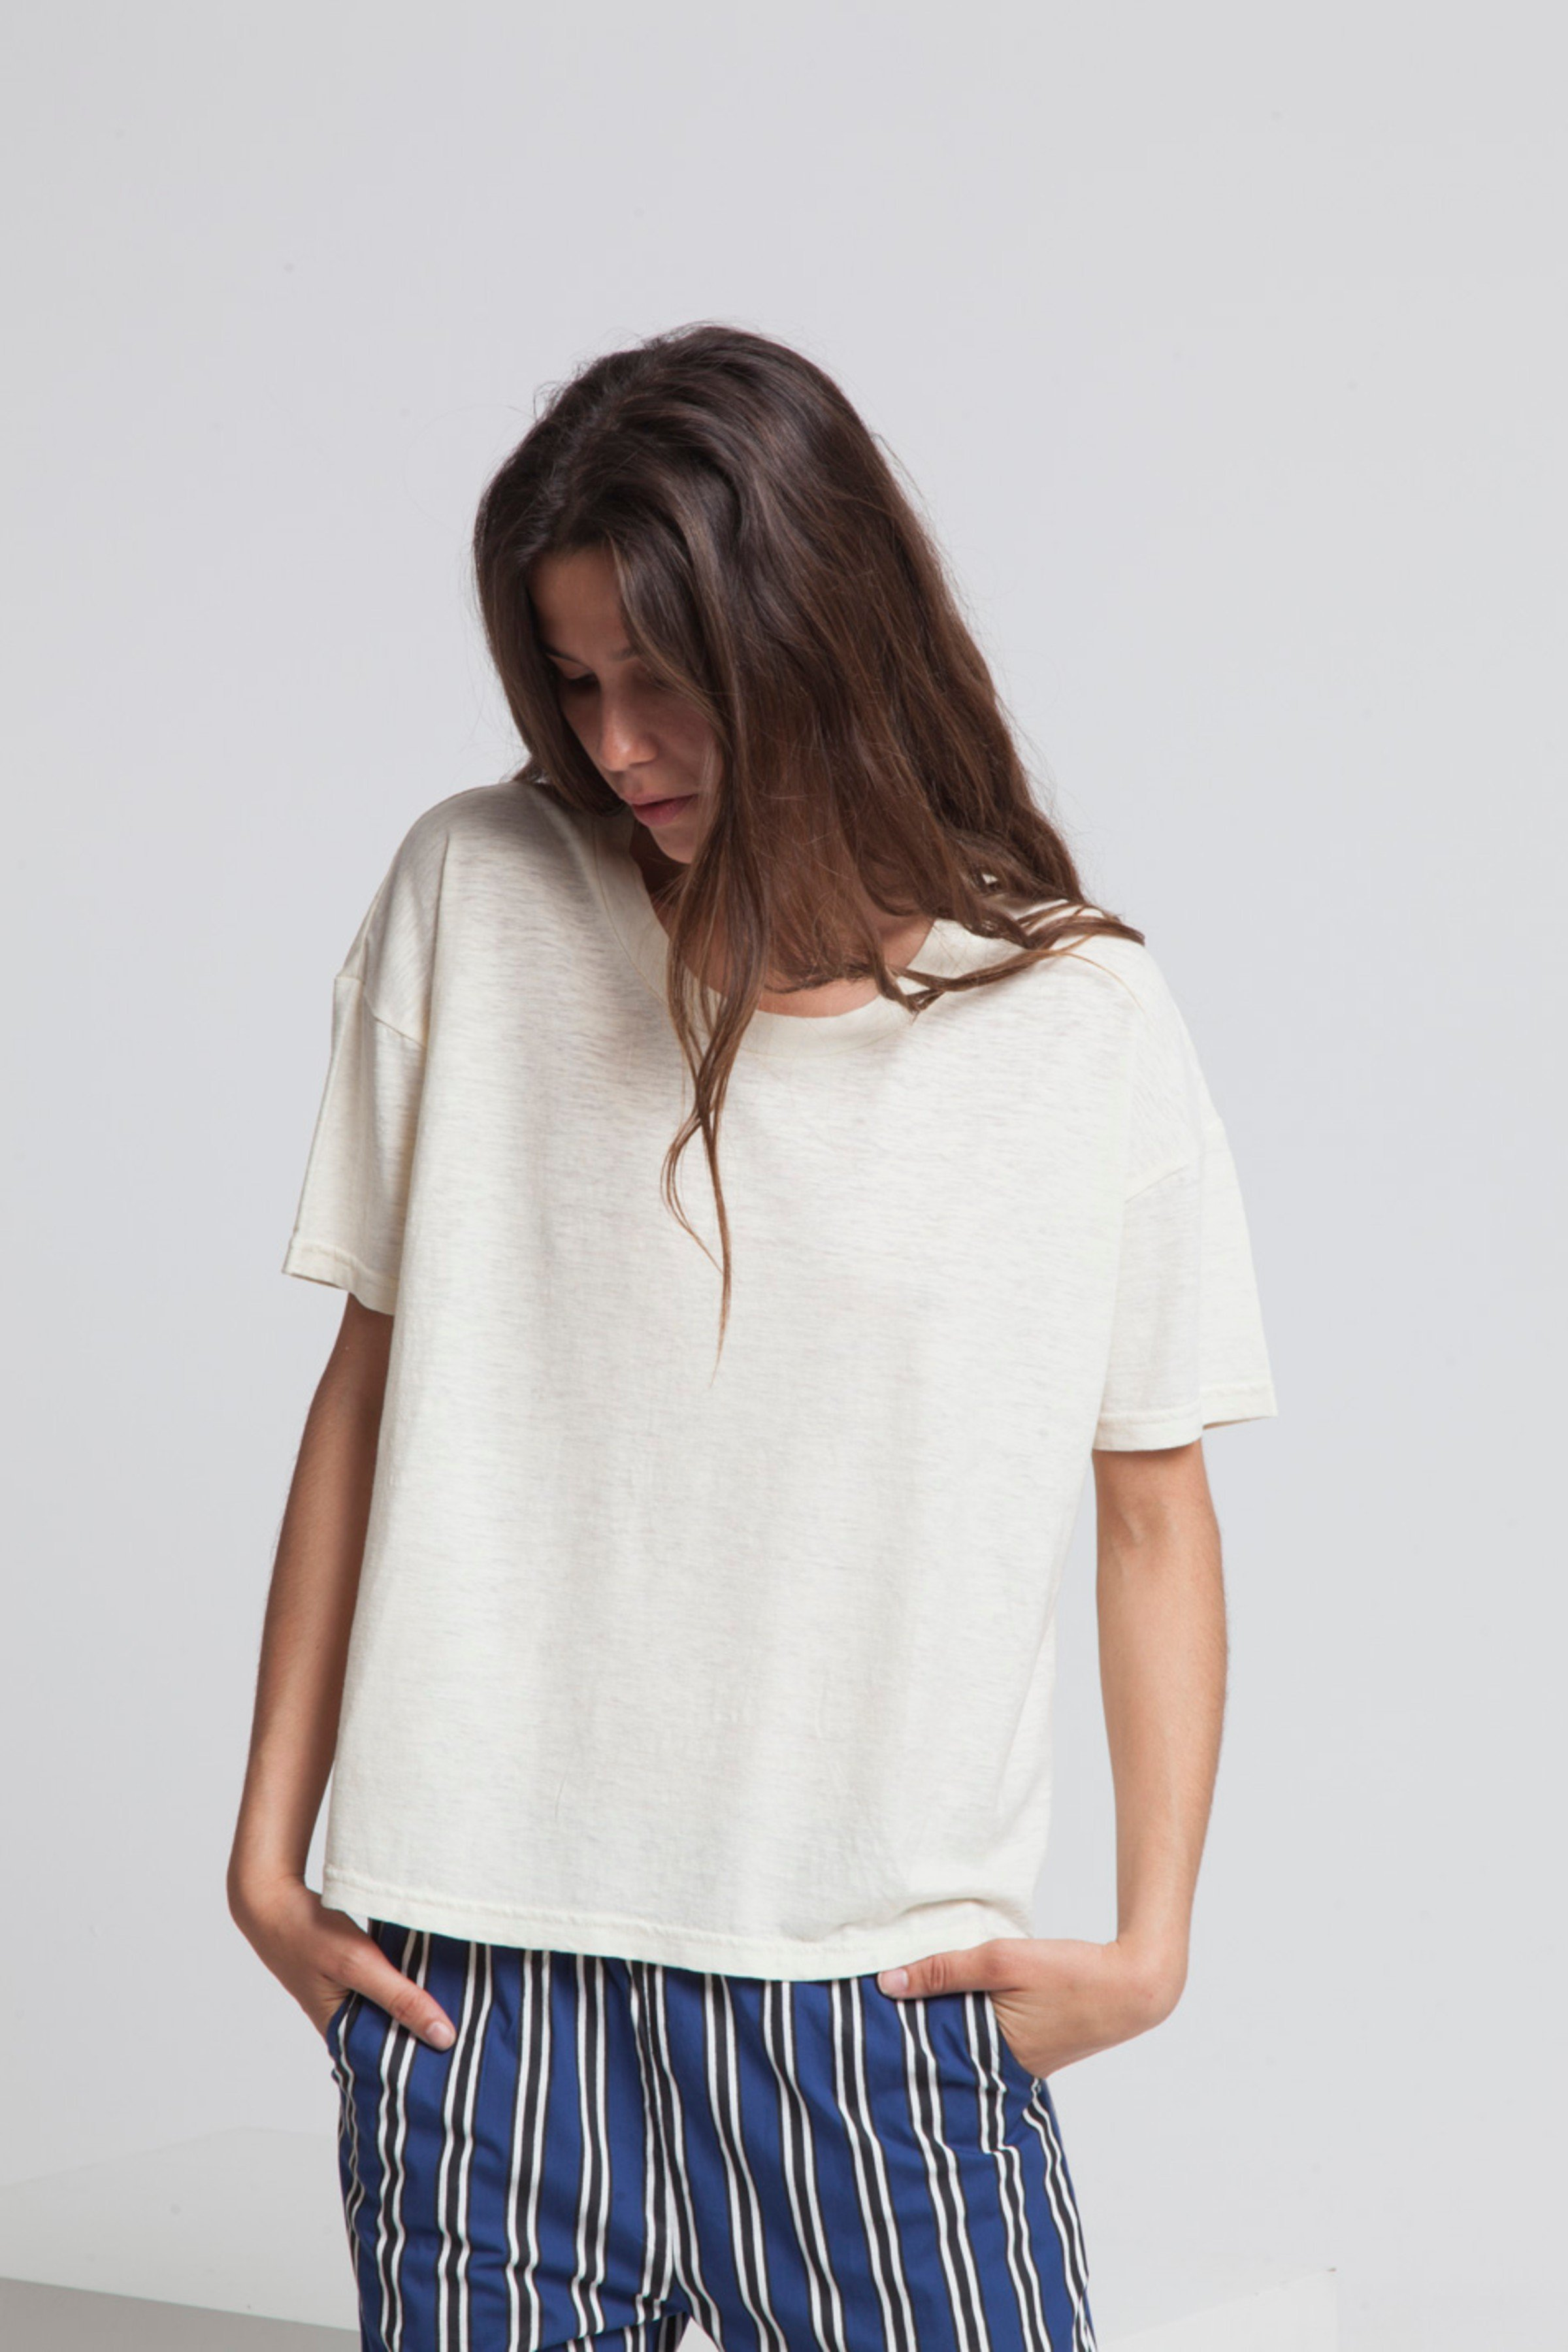 T-Shirt Ivy Weiss from LOVECO